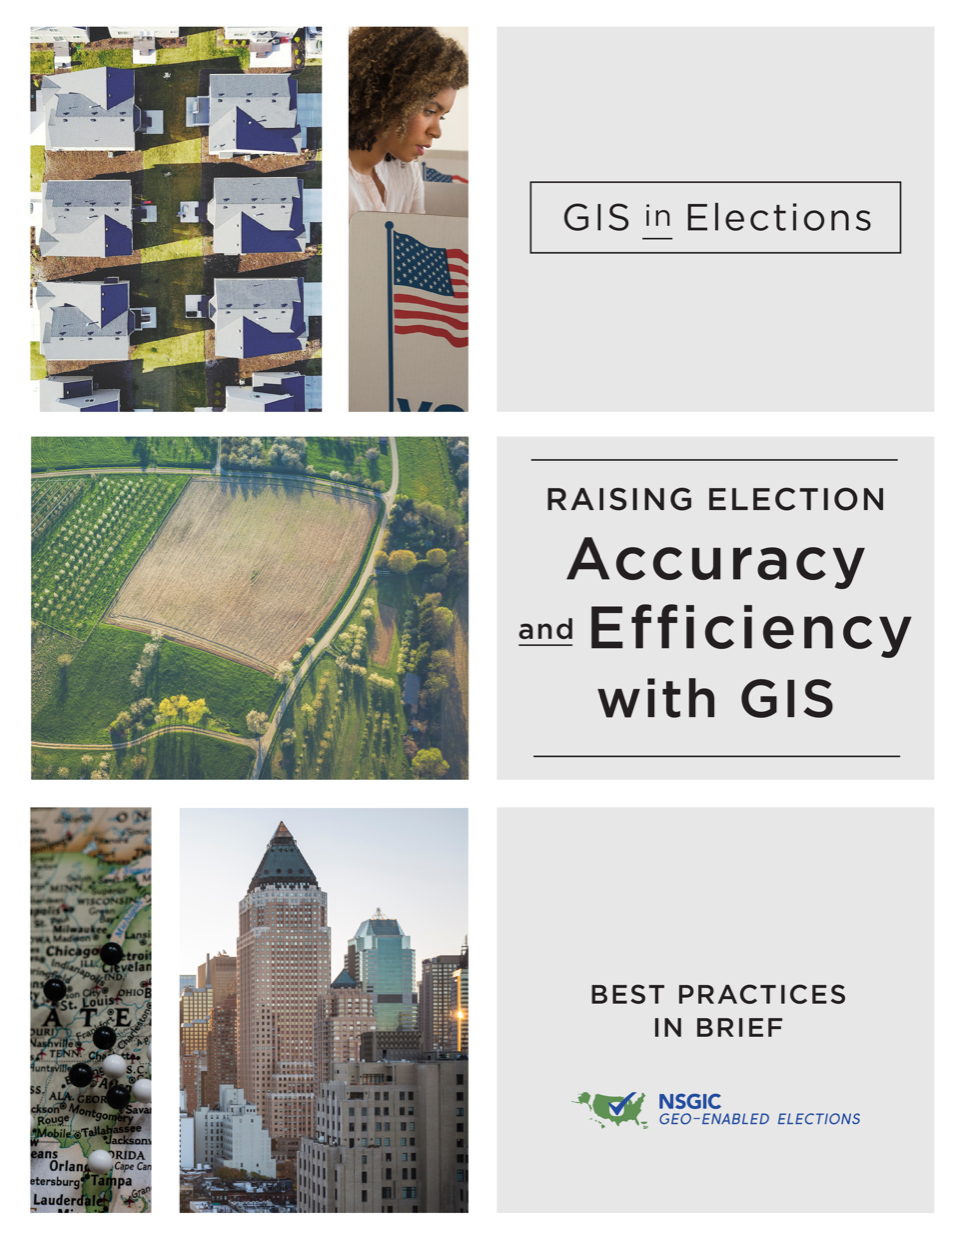 GIS In Elections graphic